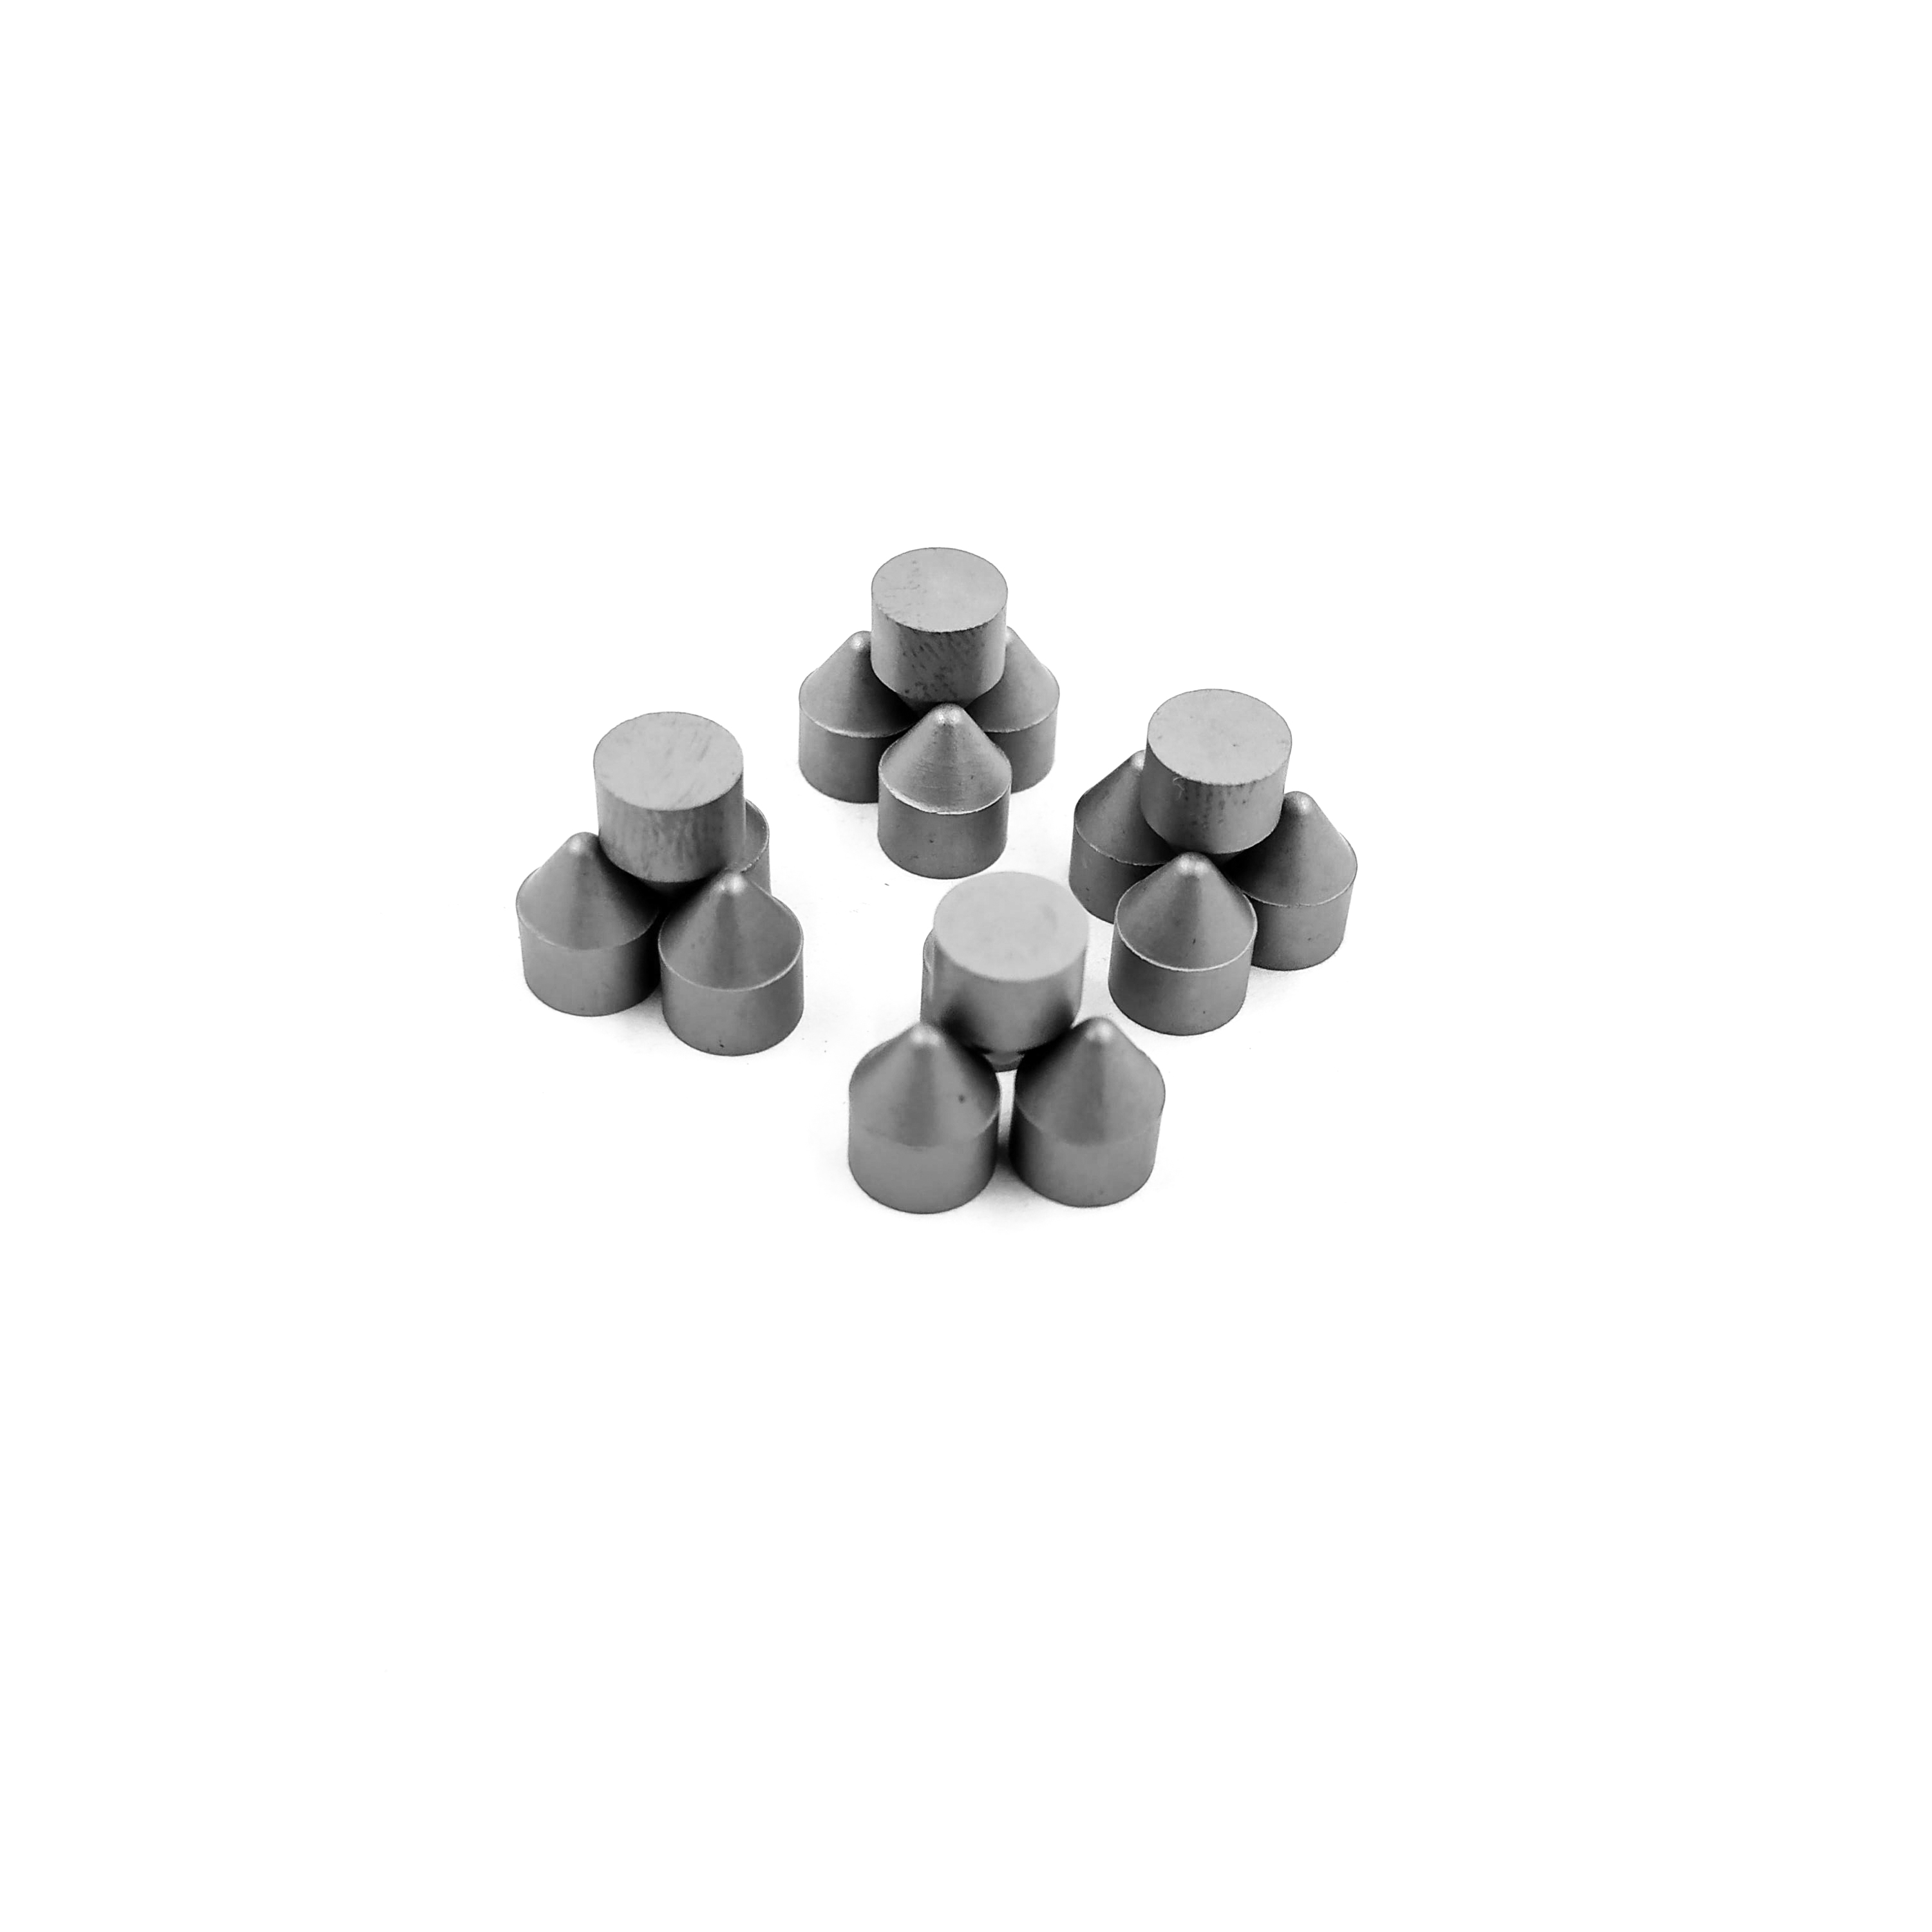 High Performance Hard Metal Rock Drill Bits With Good Wear Resistance